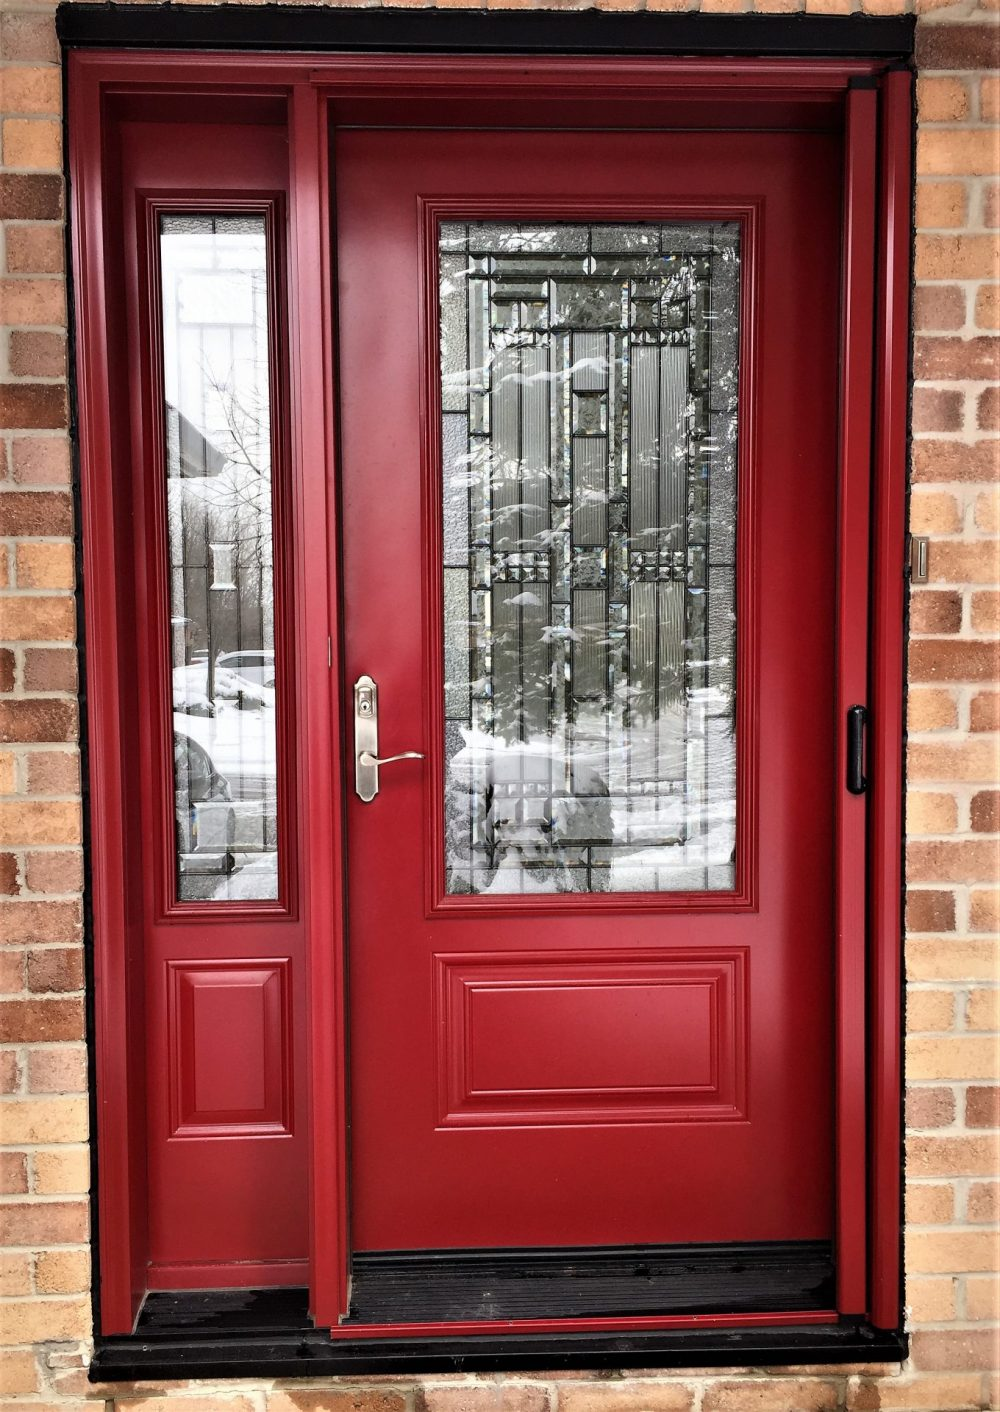 steel door system t240 red with naples glass and retractable screen